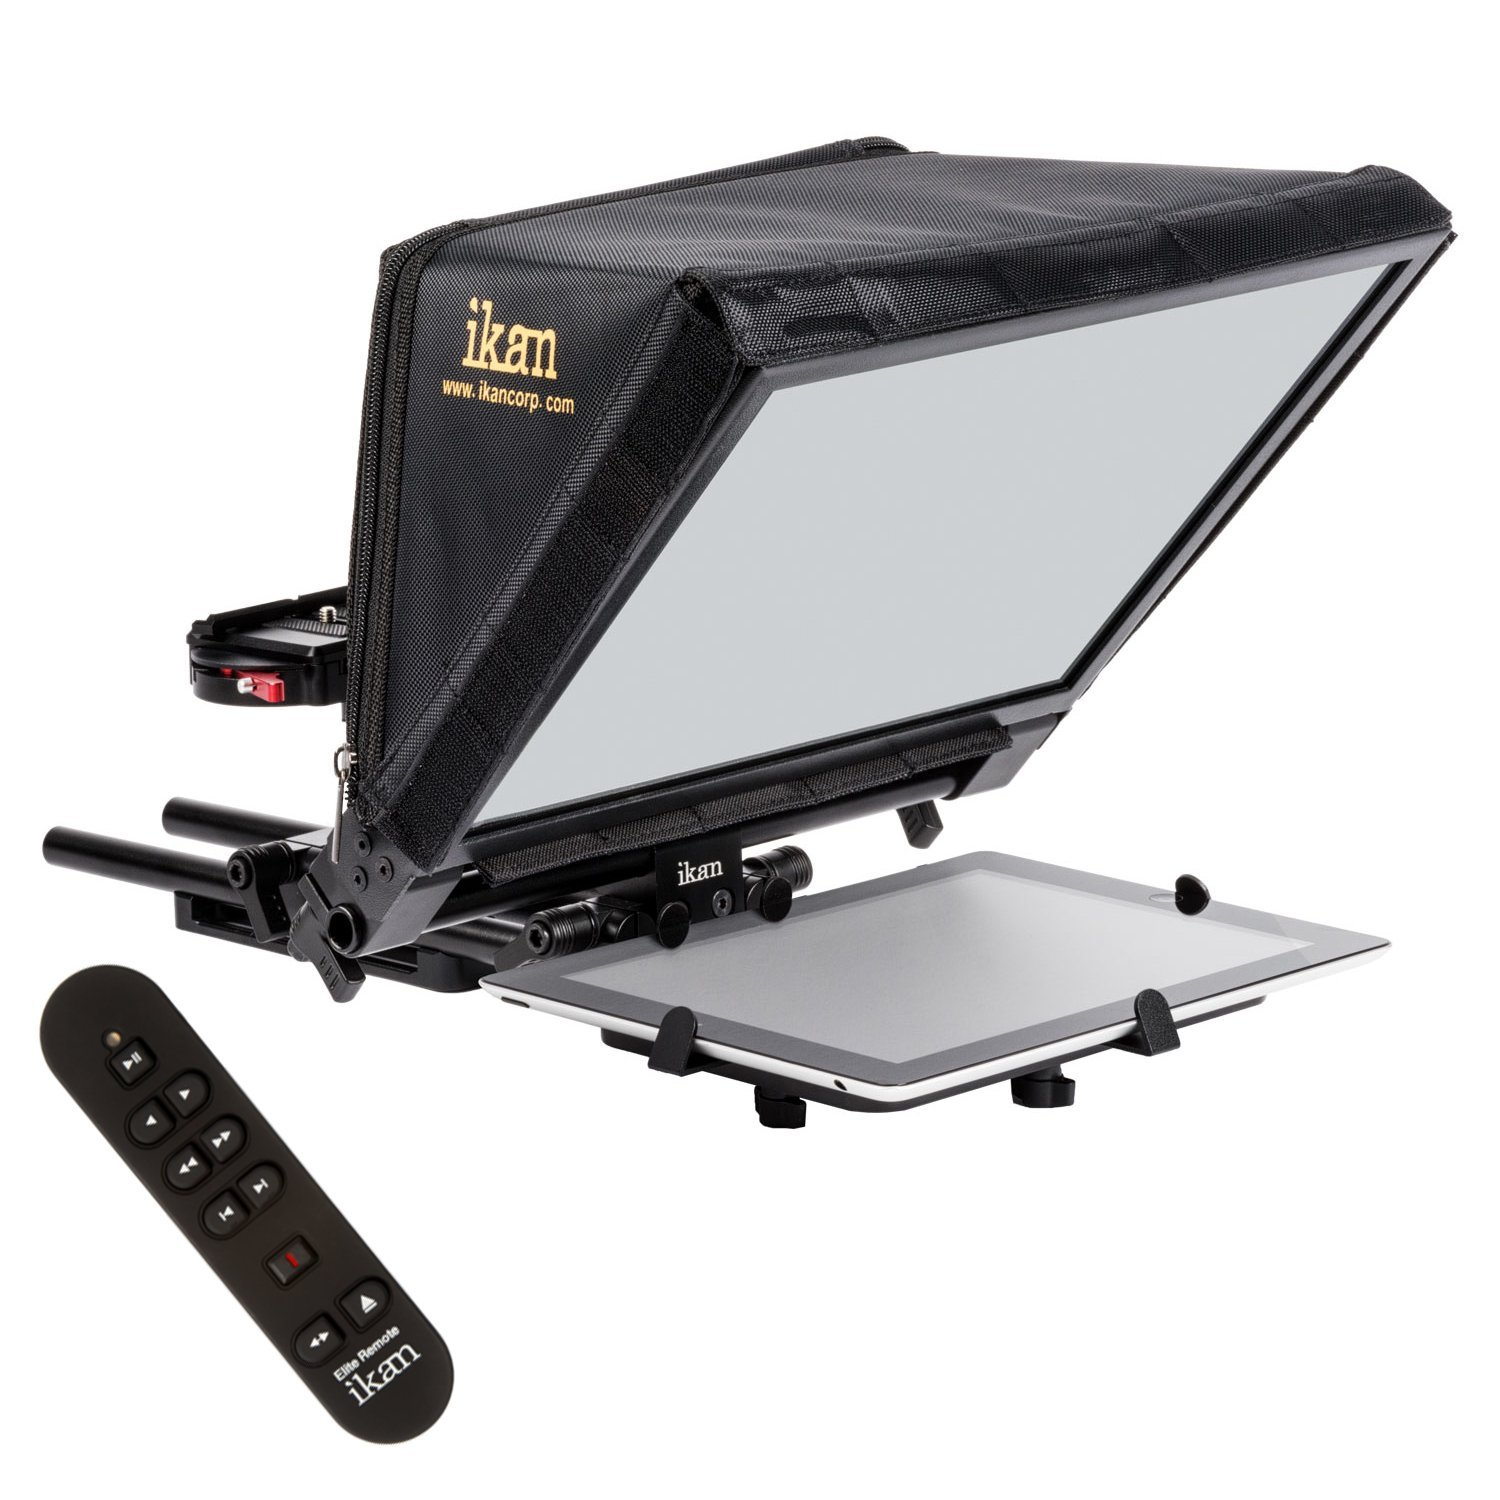 Ikan Teleprompter Kit